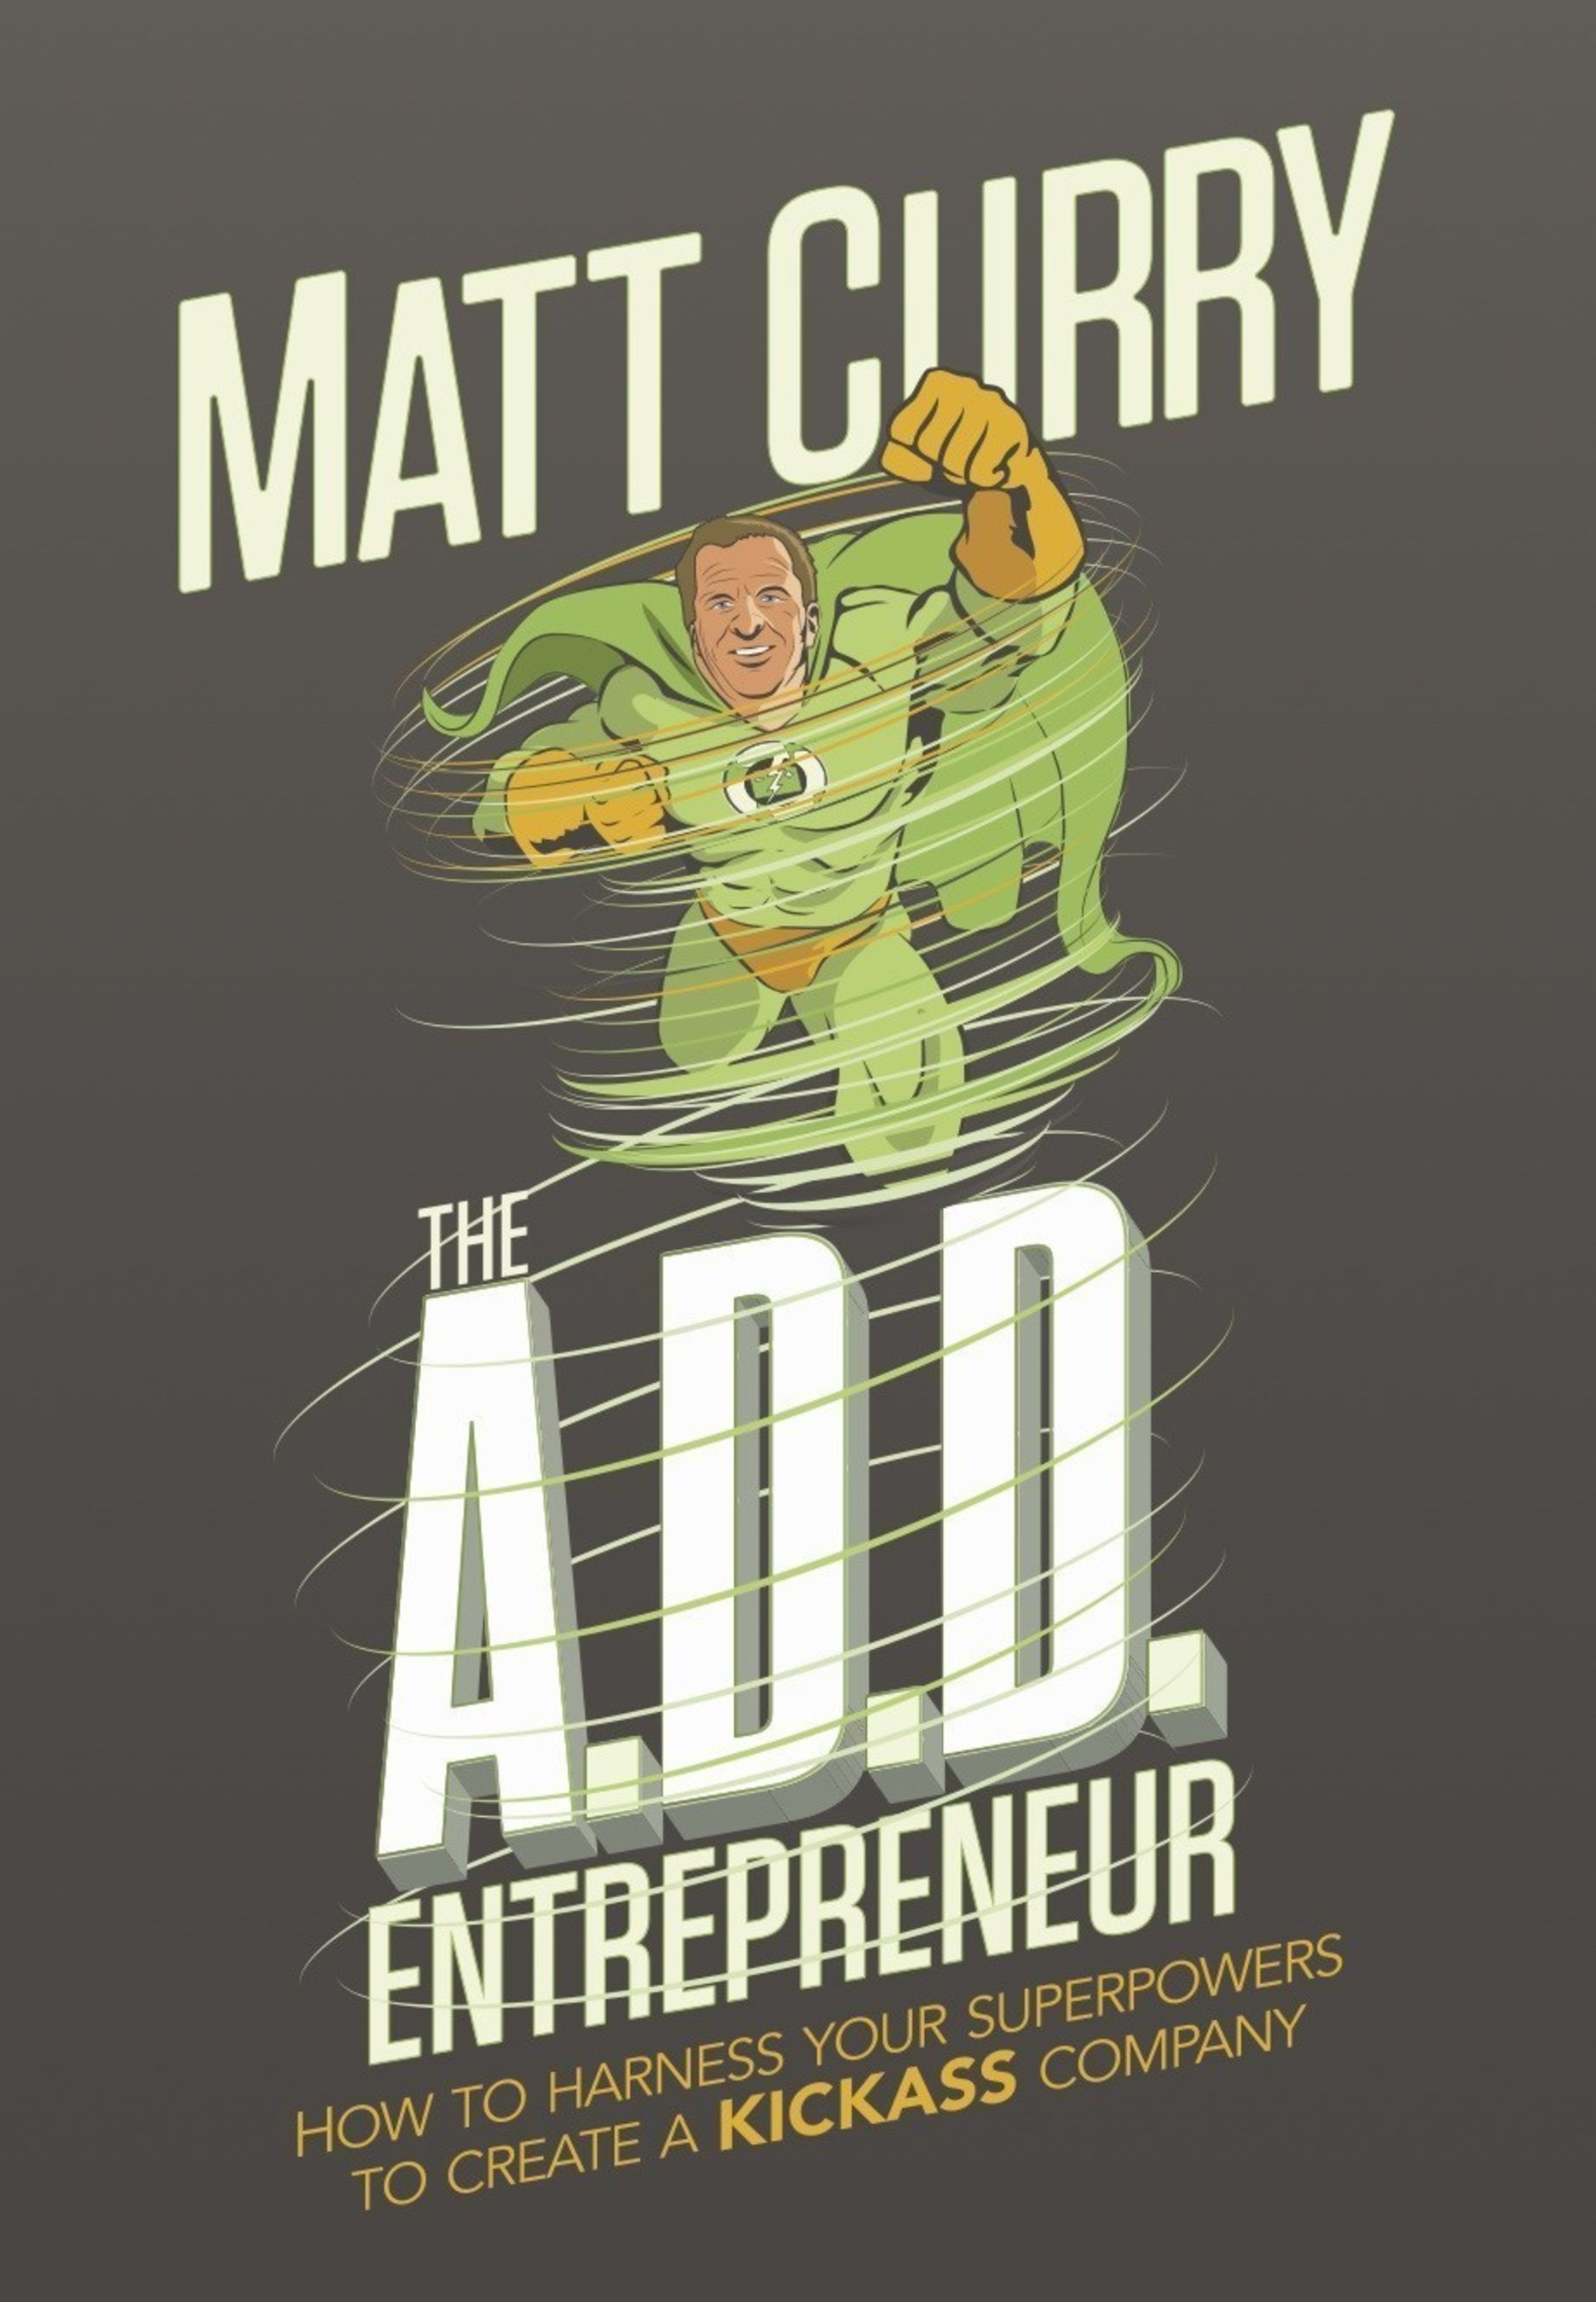 How an Entrepreneur Embraced and Harnessed His A.D.D. to Build a $20 Million Business -- His Insights Shared in This New Book